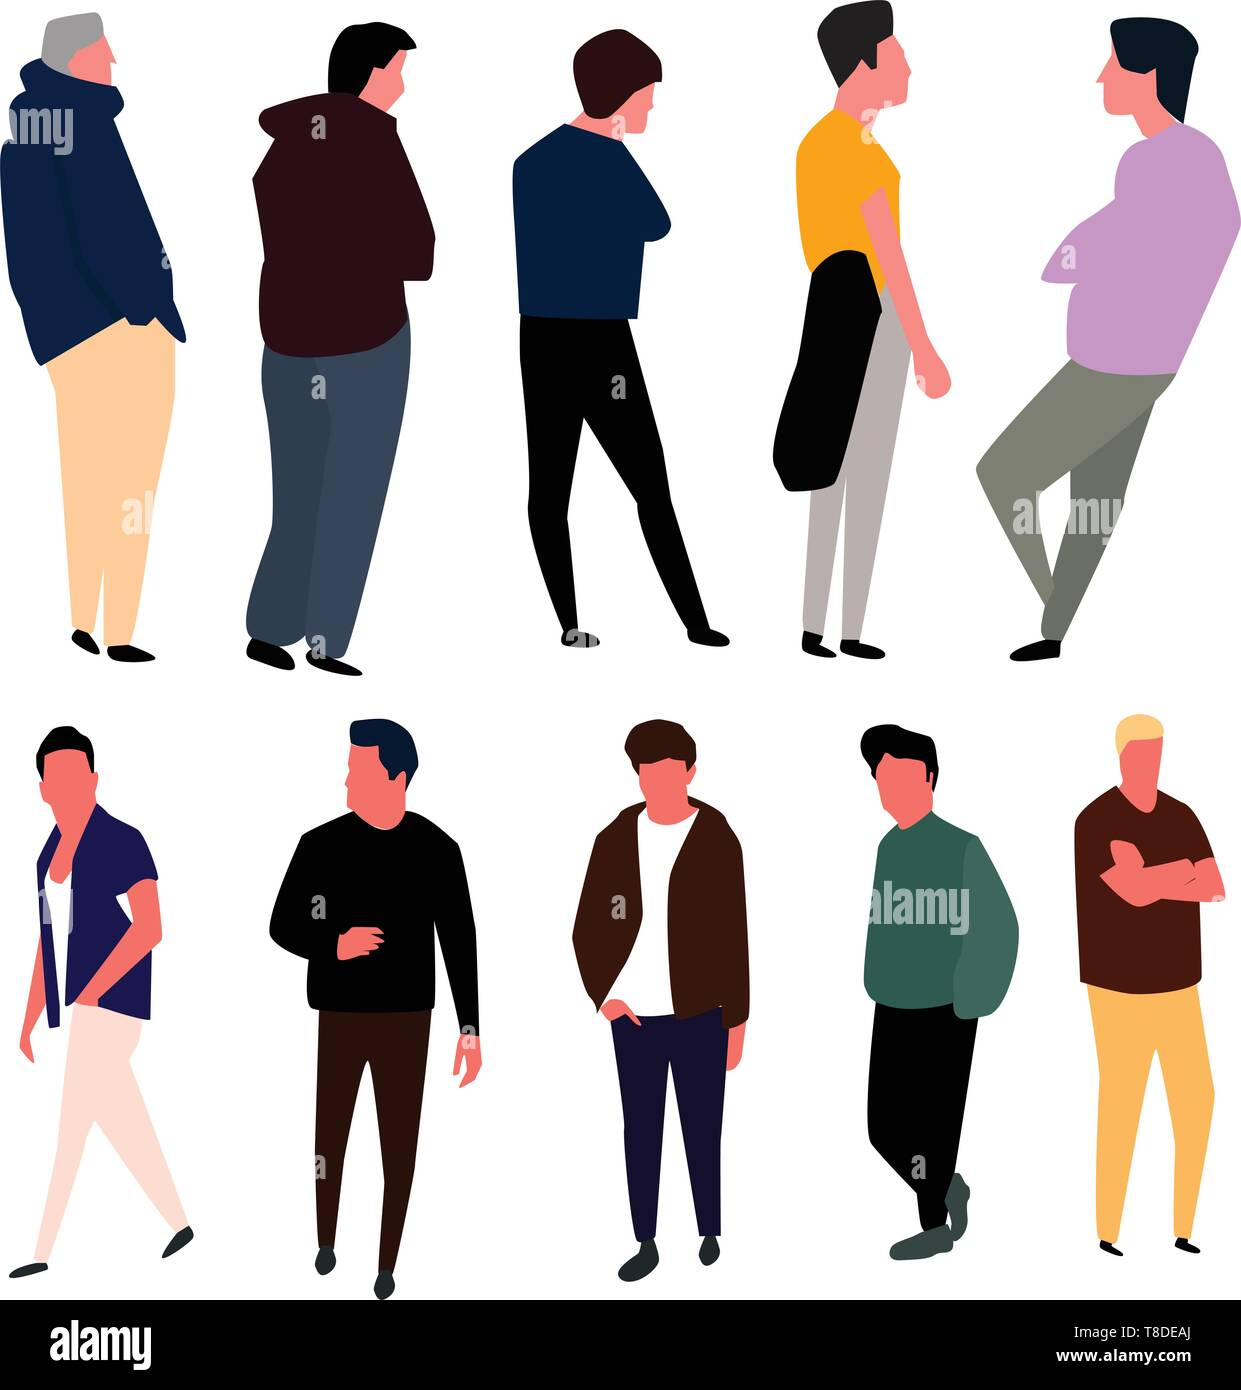 Cartoon Male Characters Men In Fashion Clothes Vector Stock Vector Image Art Alamy